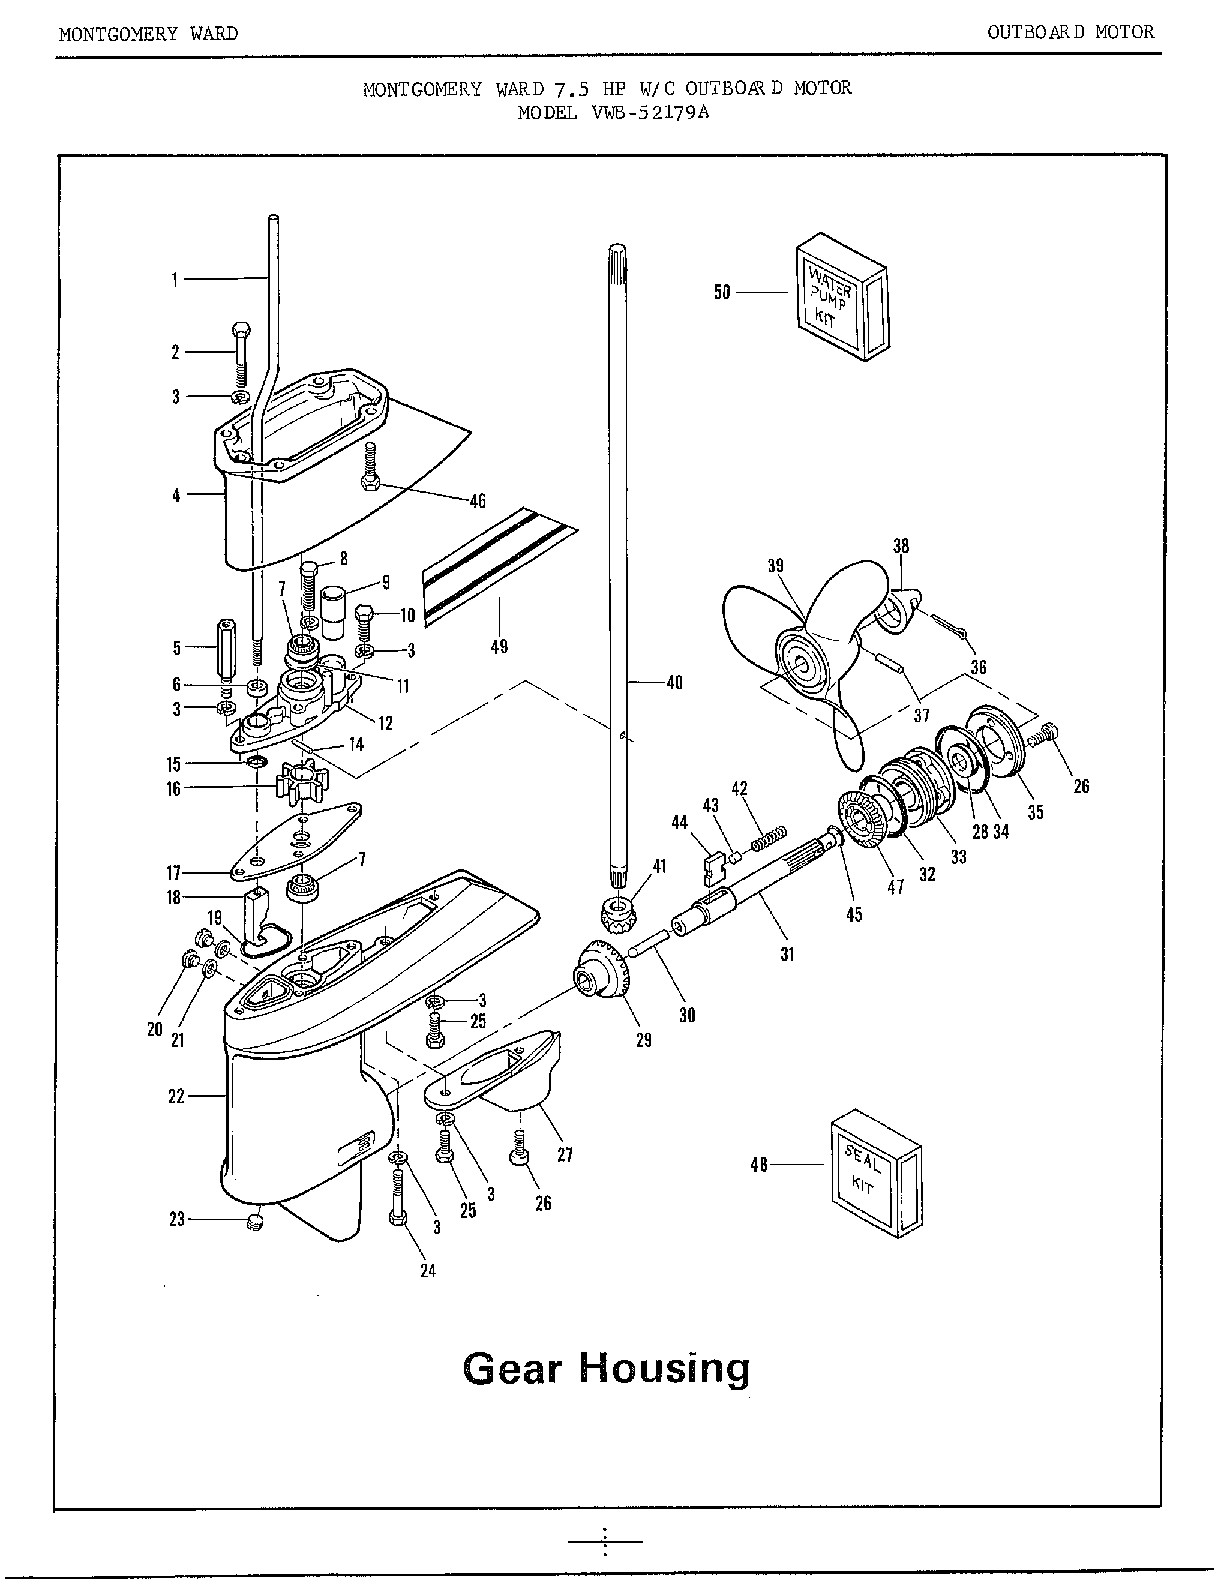 Outboard Engine Diagram Motor Parts Outboard Motor Parts Diagram Of Outboard Engine Diagram